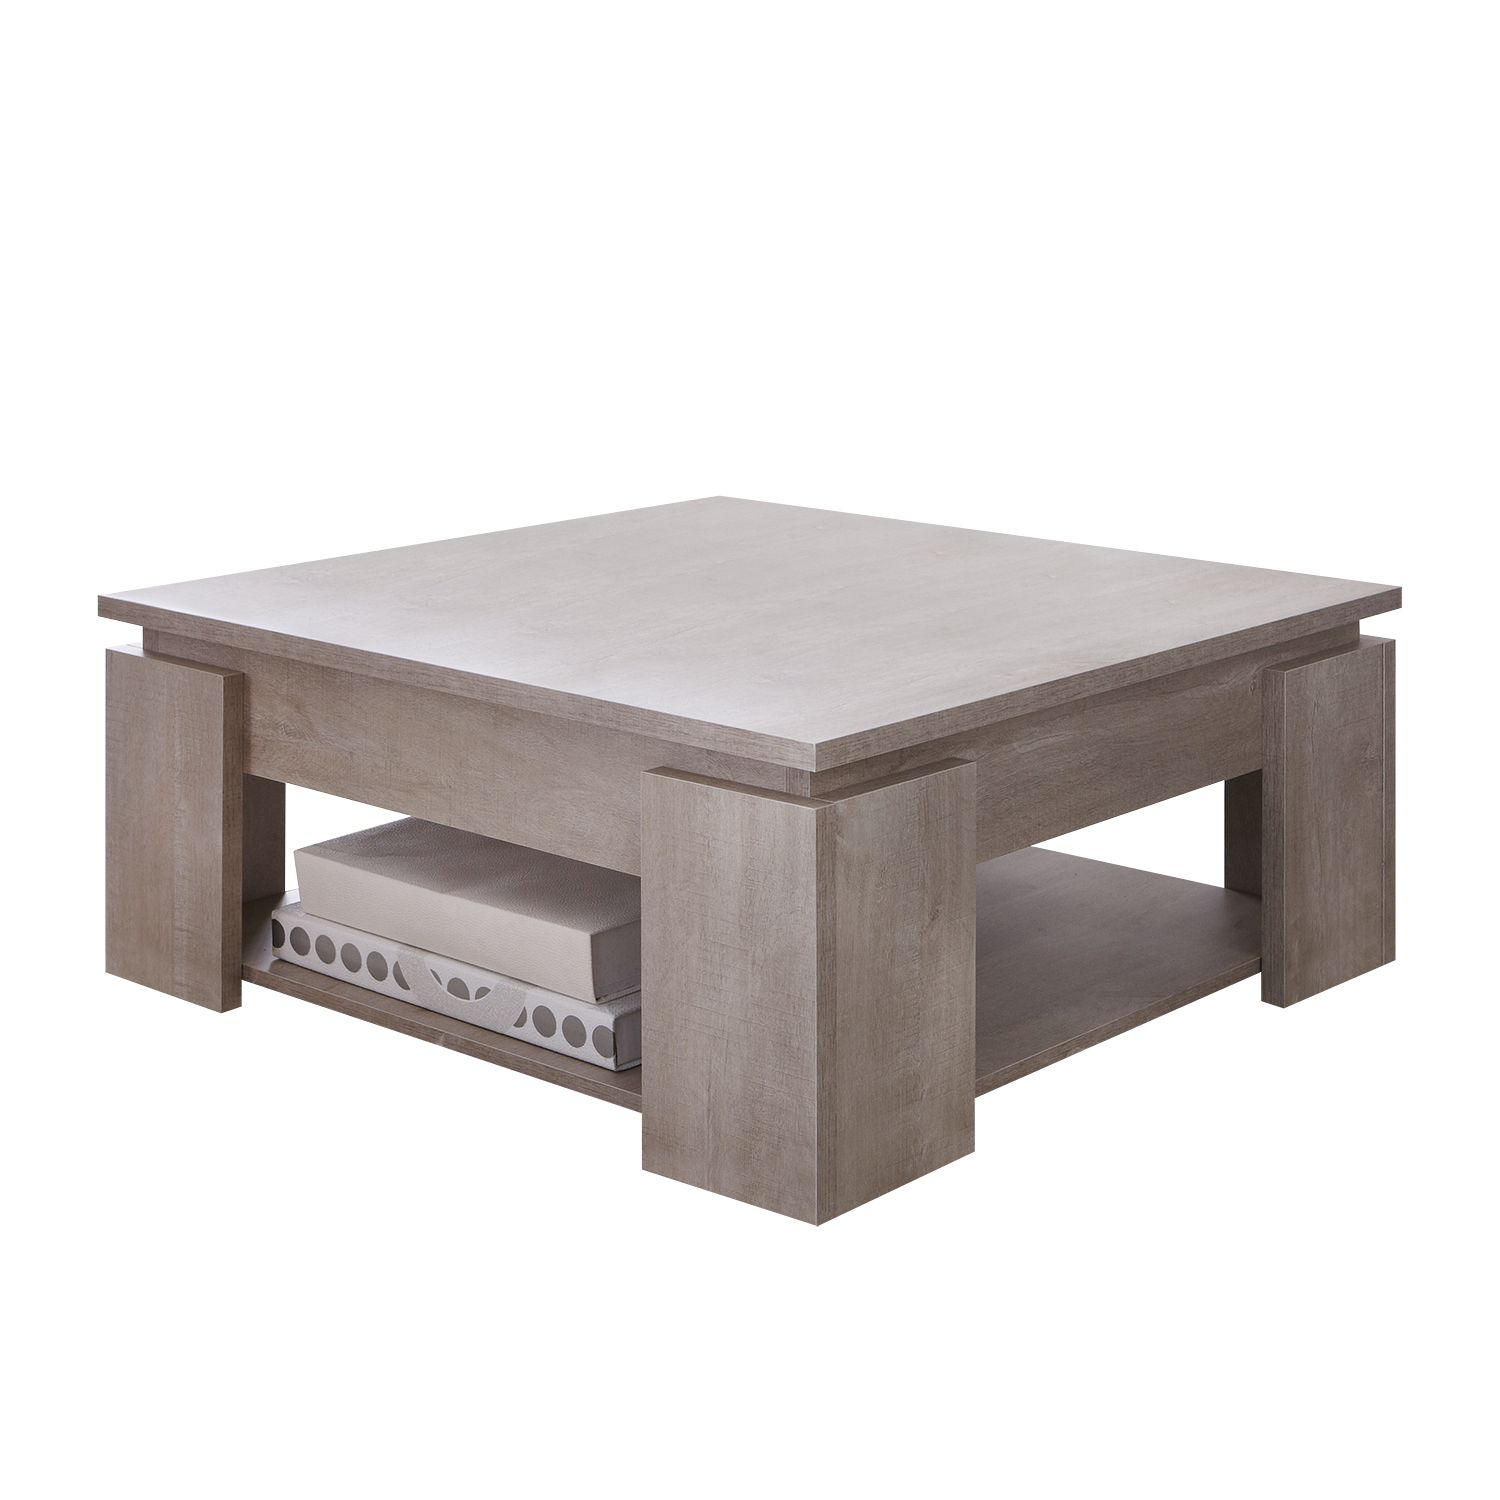 Table basse Toras